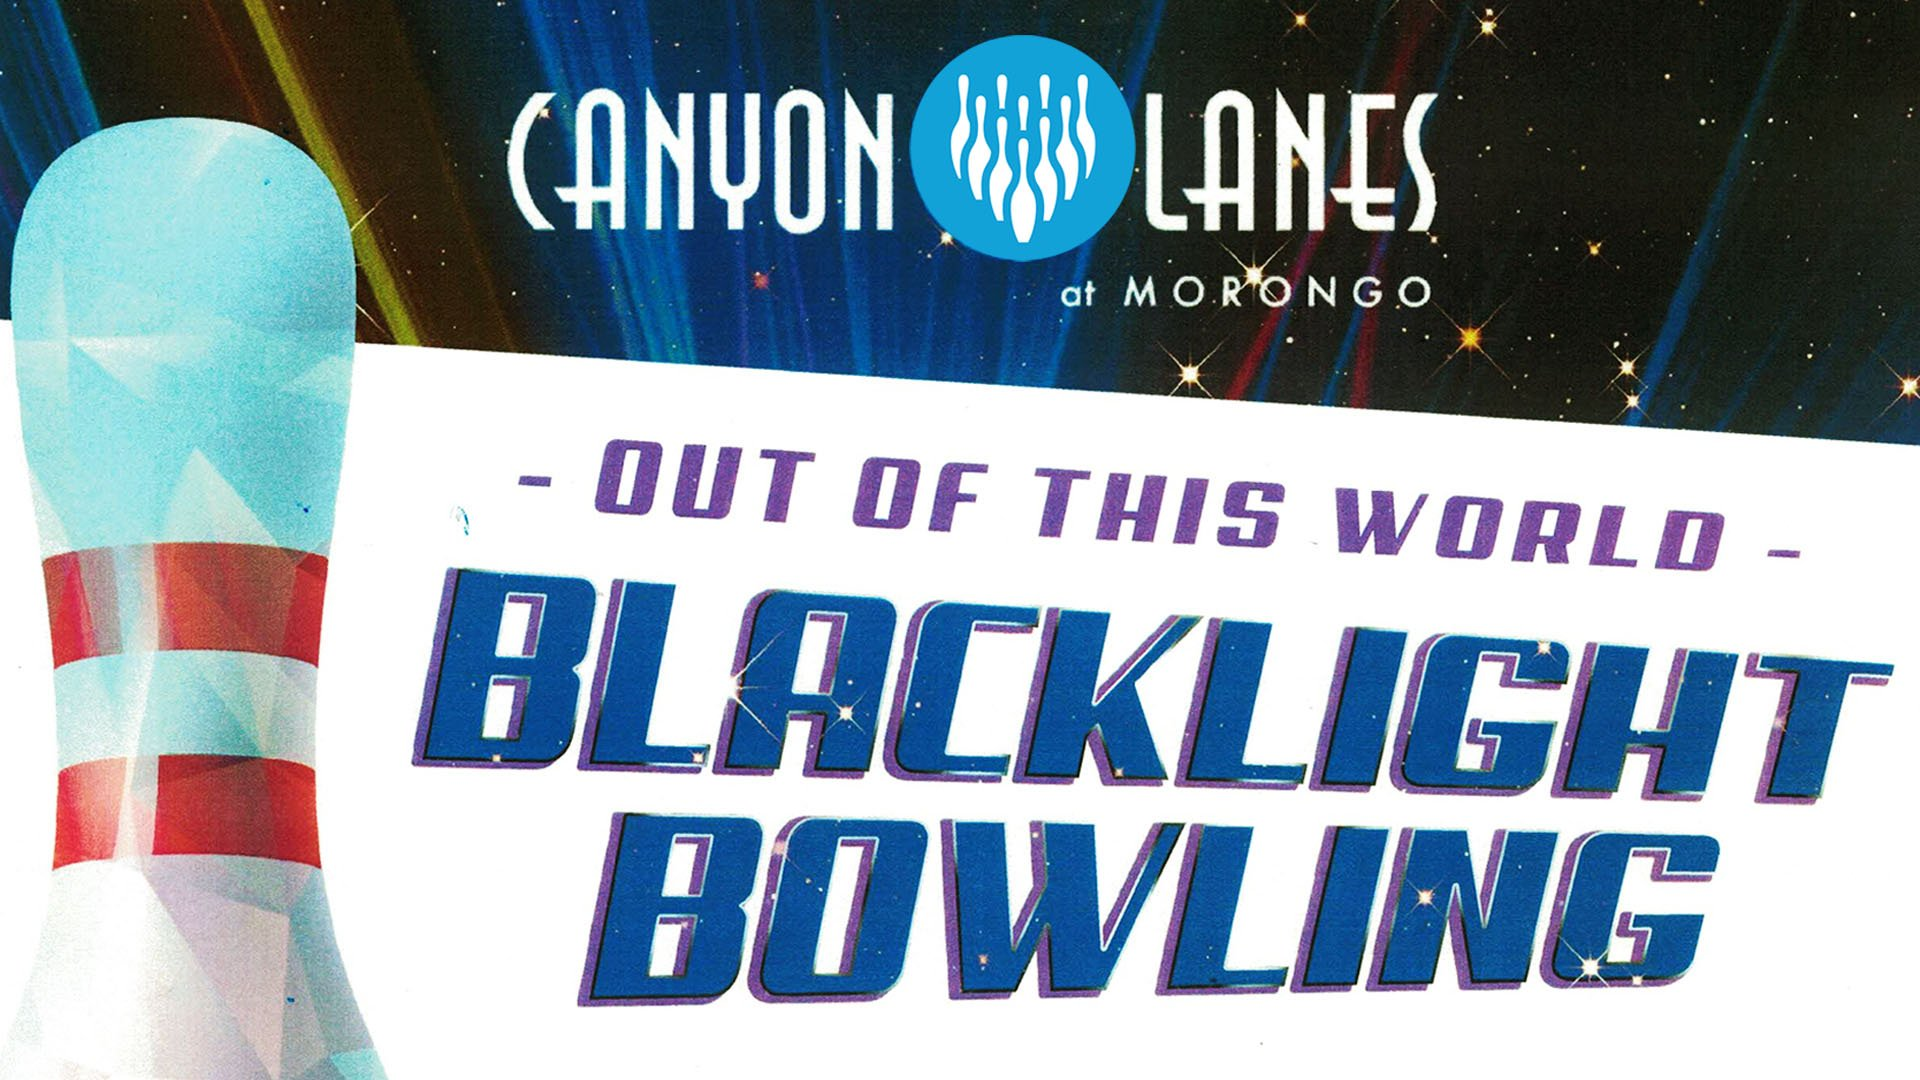 Out of this World Backlight Bowling is fun for the whole family! Friday and Saturday at Canyon Lanes at Morongo in Cabazon, California.